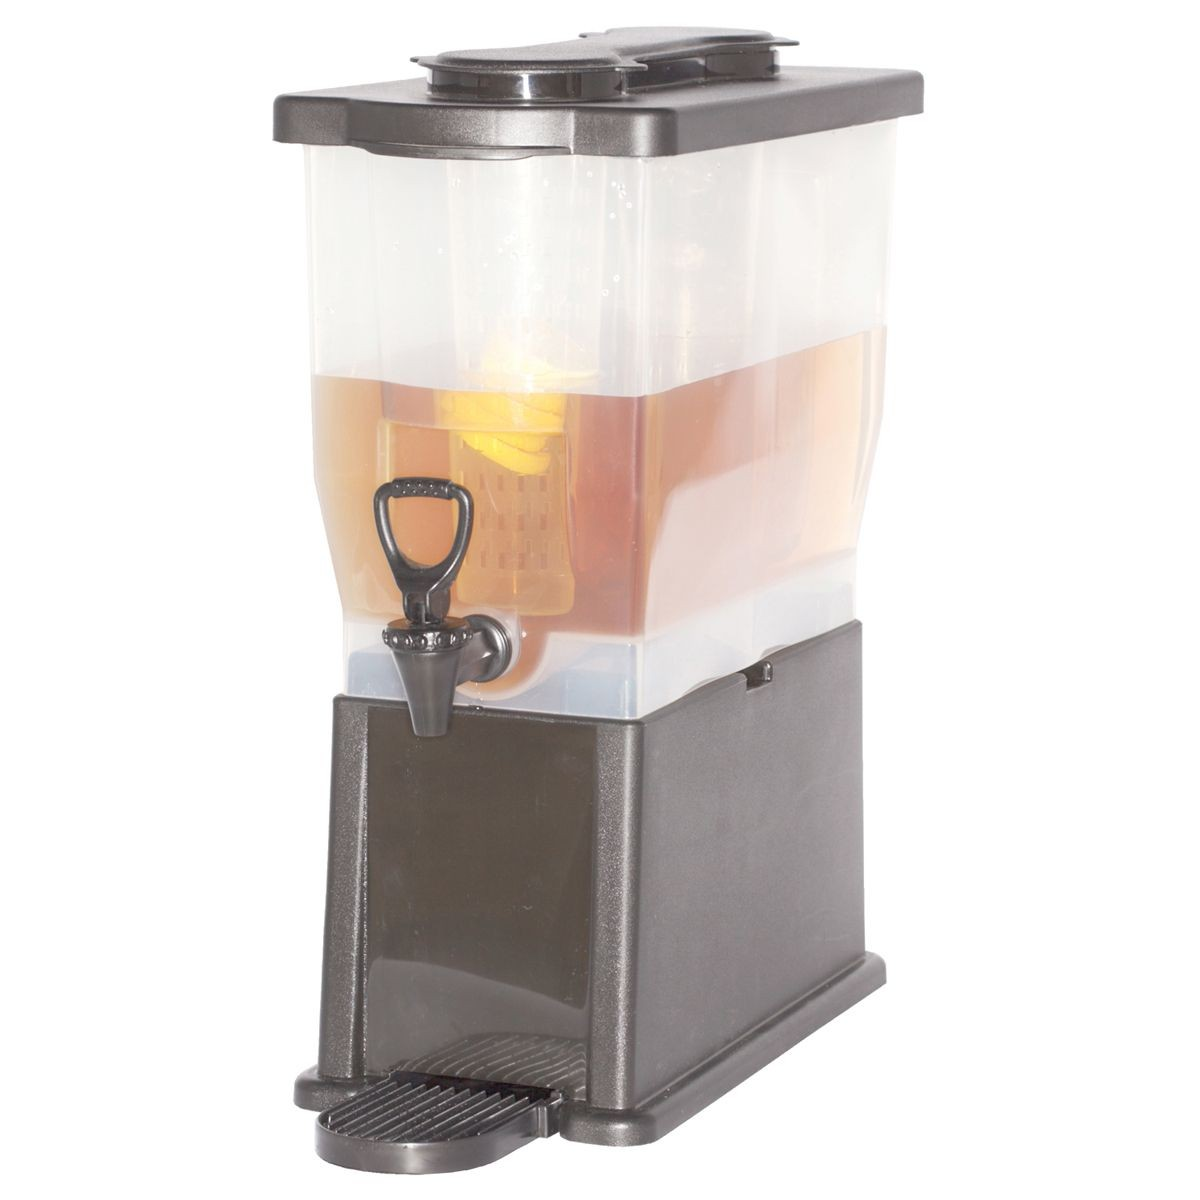 Service Ideas CBDP3BLK Rectangular Beverage Dispenser, 3 Gallon